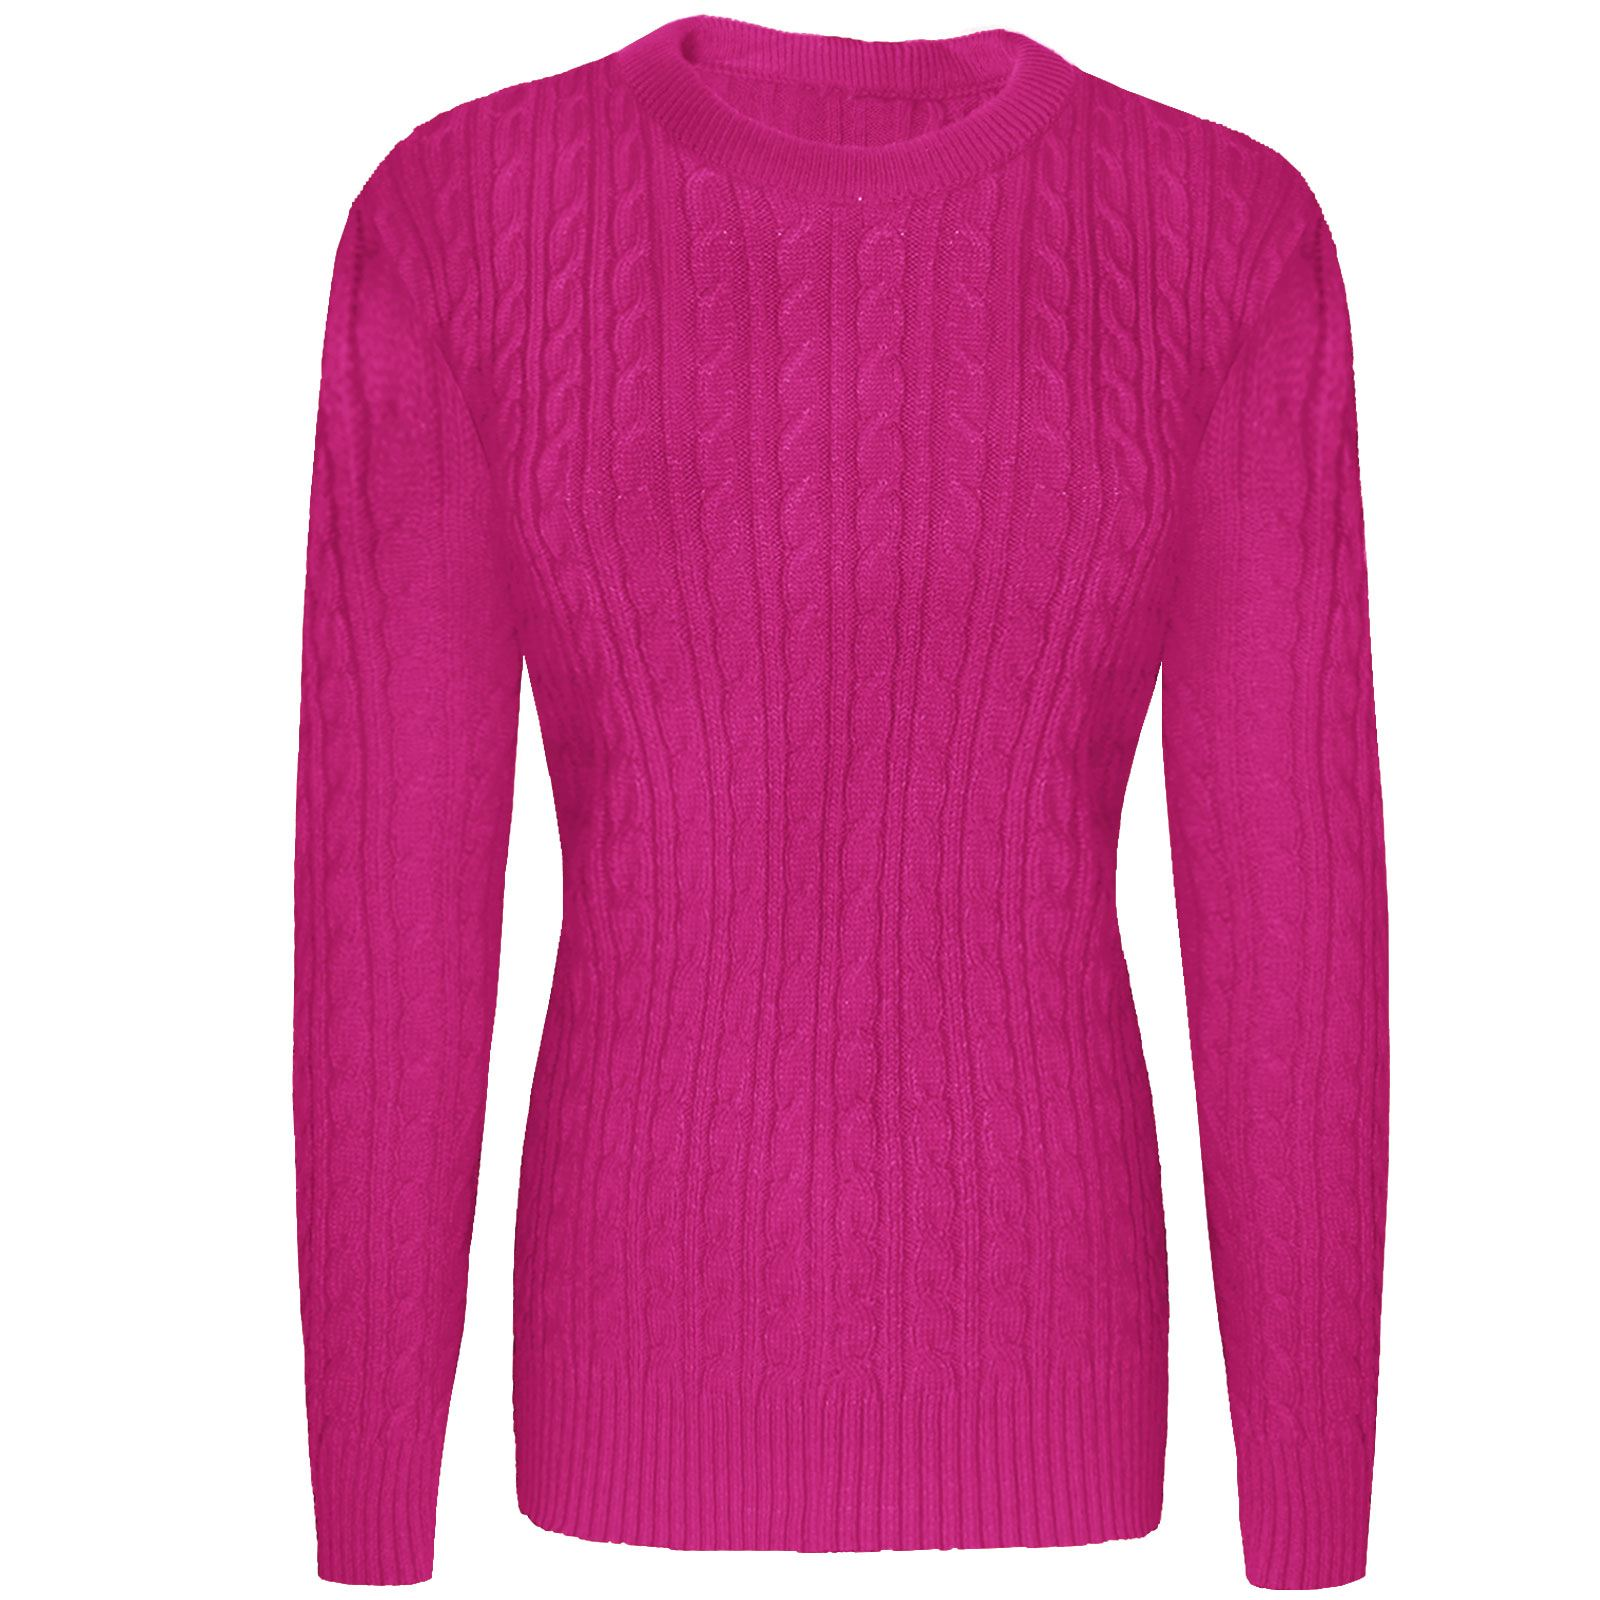 b1a73ee47f Ladies Womens Crew Neck Cable Knitted Sweater Jumpers Pullover Long Sleeve  Tops Fuchsia S m. About this product. Picture 1 of 2  Picture 2 of 2